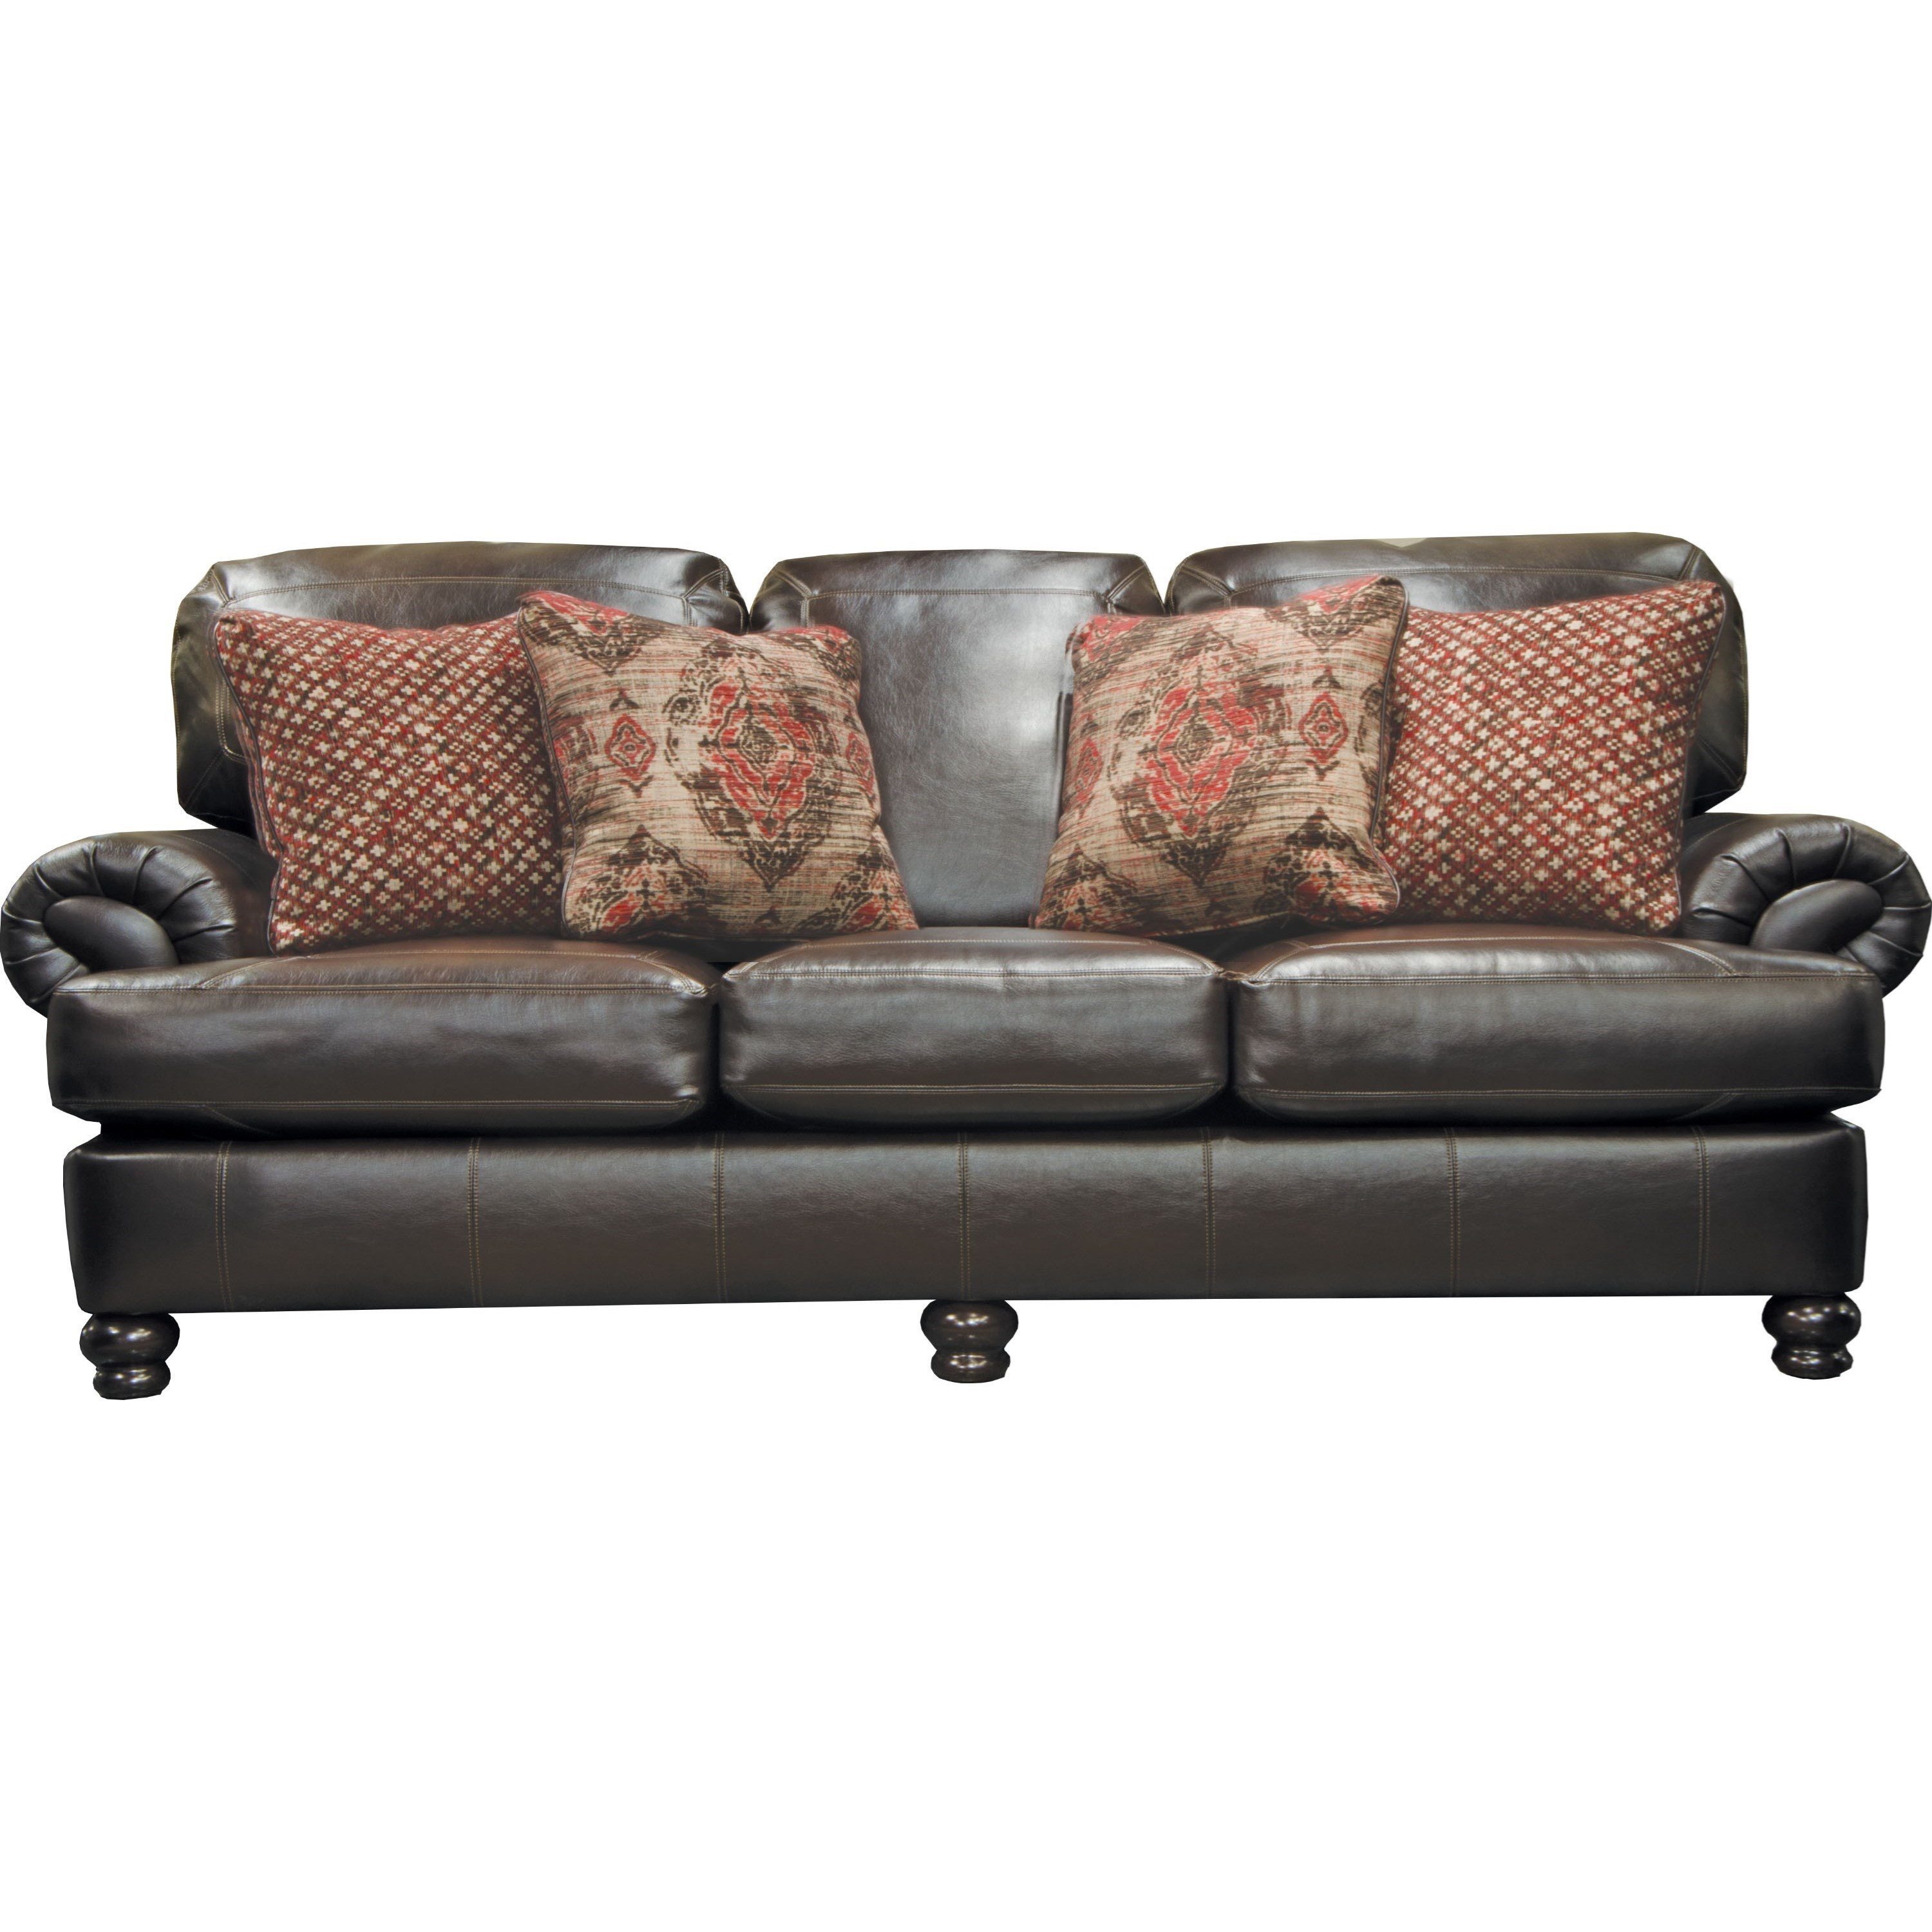 Jackson Furniture Southport Stationary Sofa - Item Number: 436703-Espresso